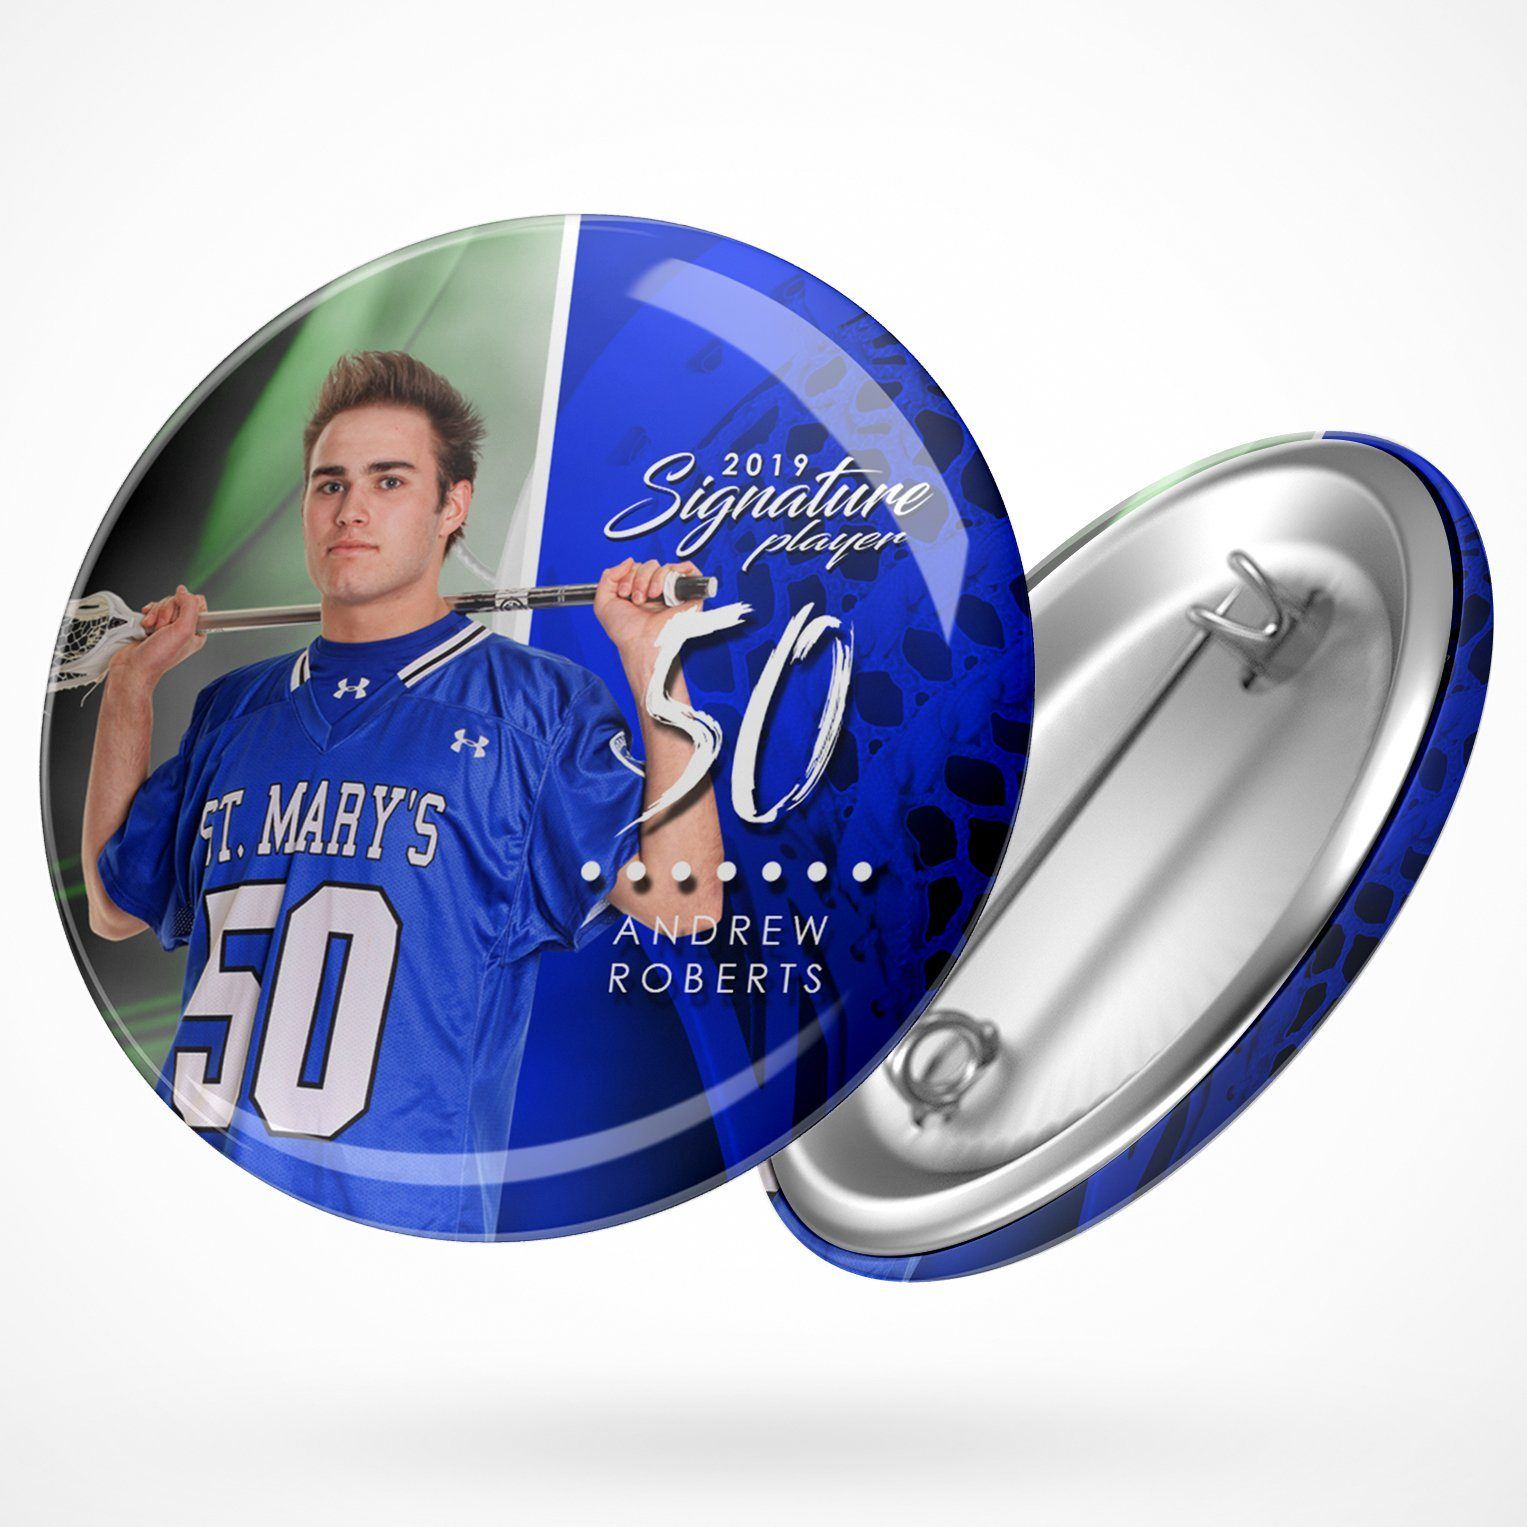 Signature Player - Lacrosse - V1 - Extraction Button Template-Photoshop Template - Photo Solutions